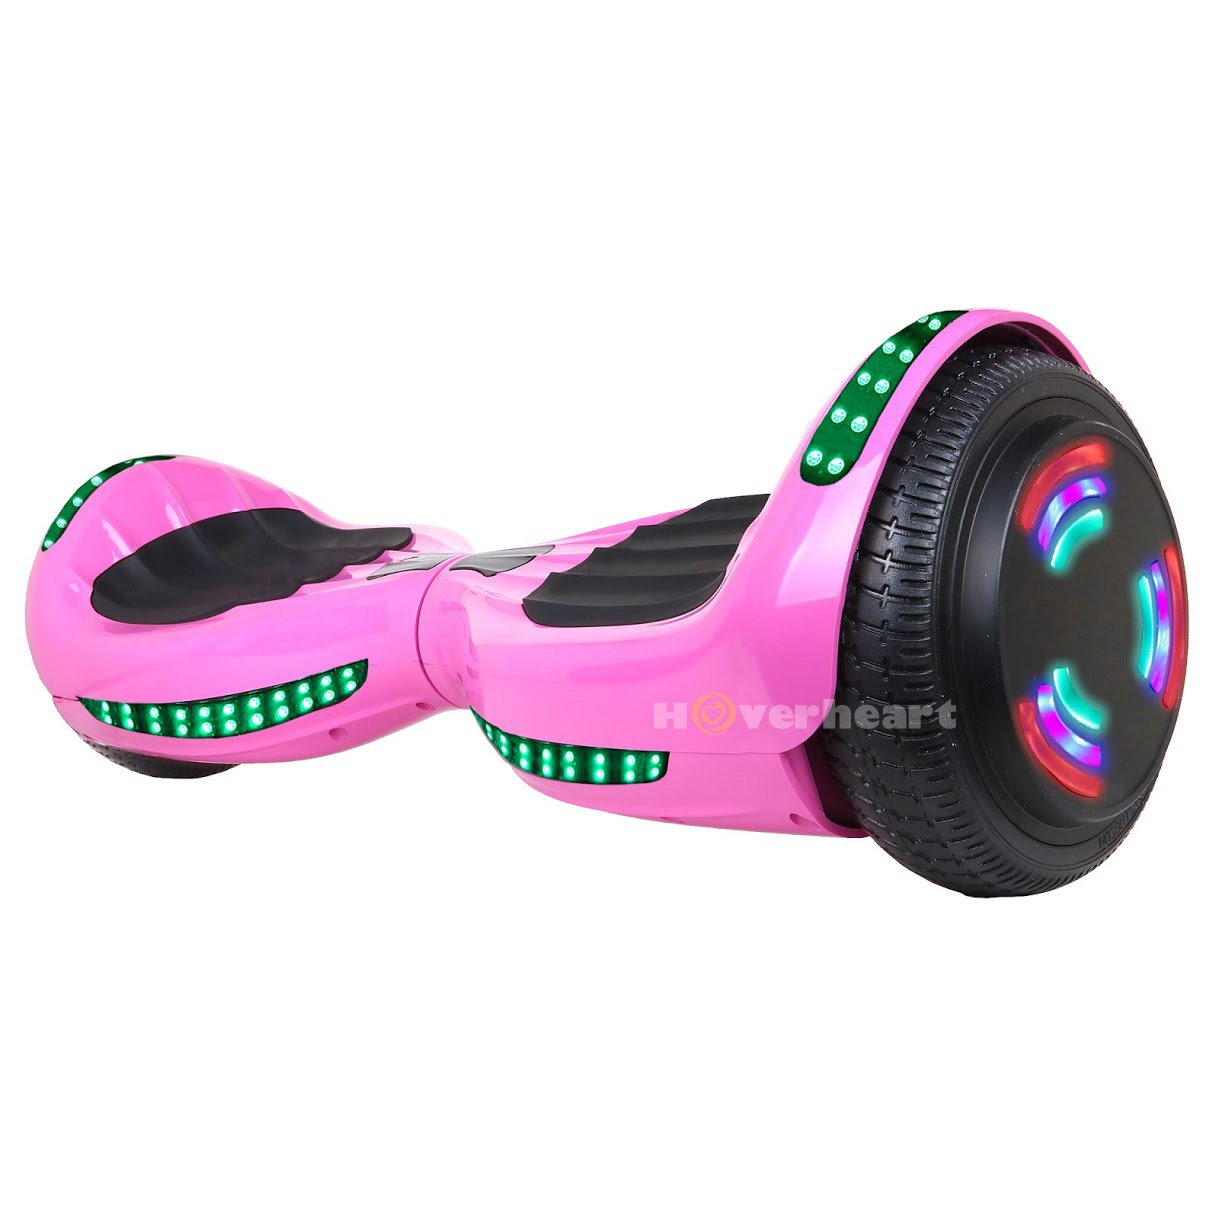 Hoverboard UL 2272 Certified Flash Wheel 6.5'' Bluetooth Speaker with LED Light Self Balancing Wheel Electric Scooter (Pink)